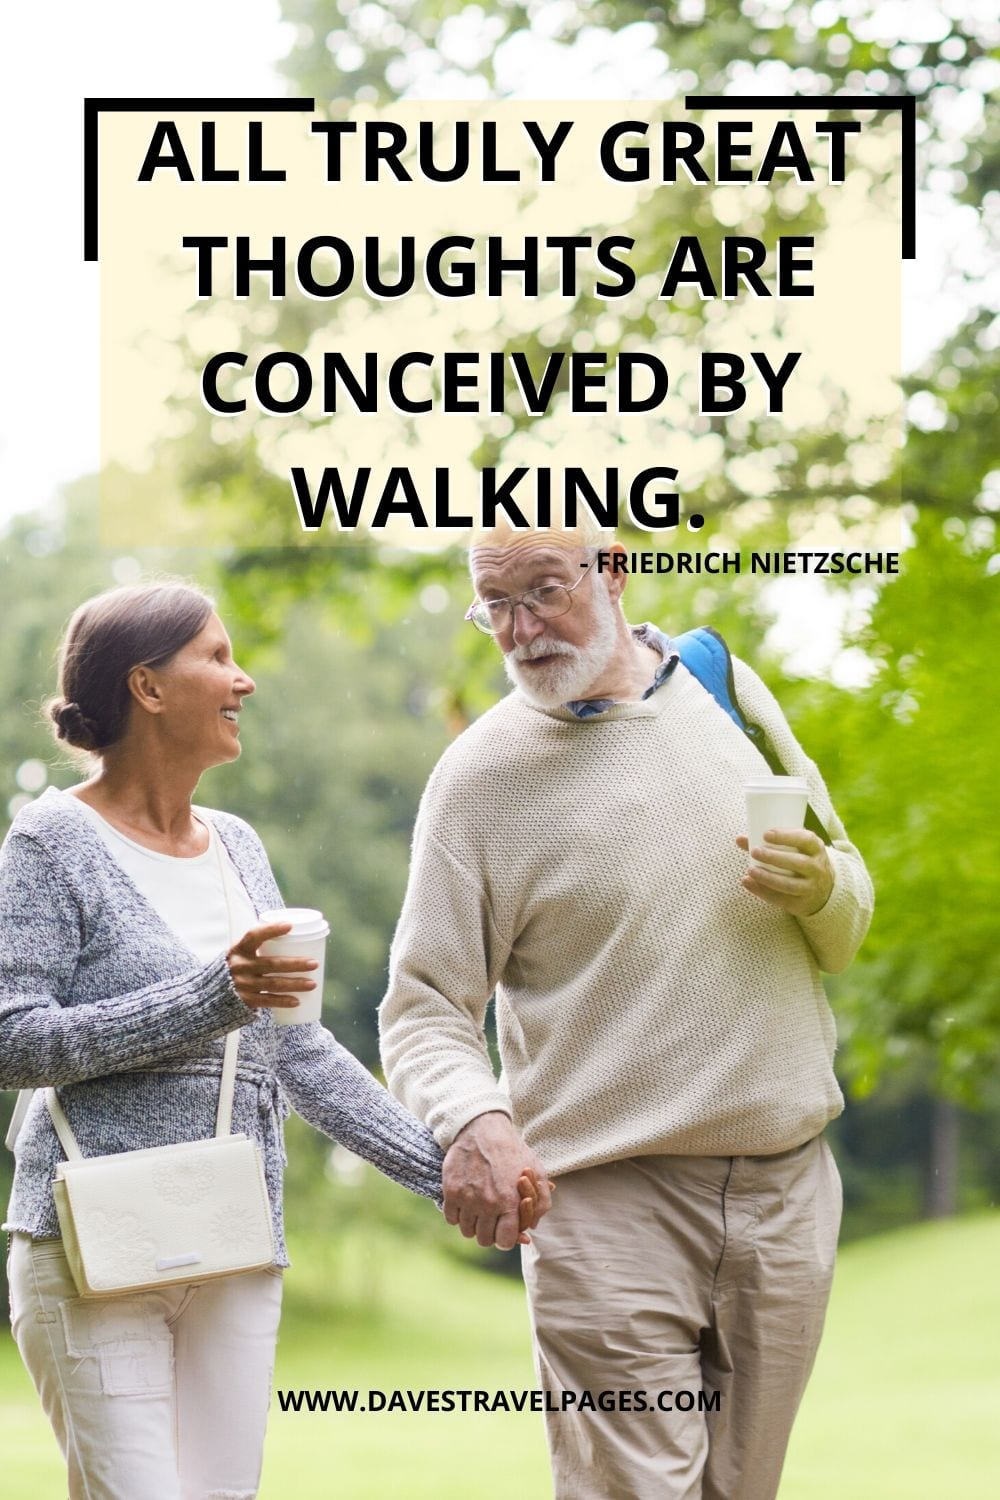 Morning Walk Quotes: All truly great thoughts are conceived by walking. - Friedrich Nietzsche